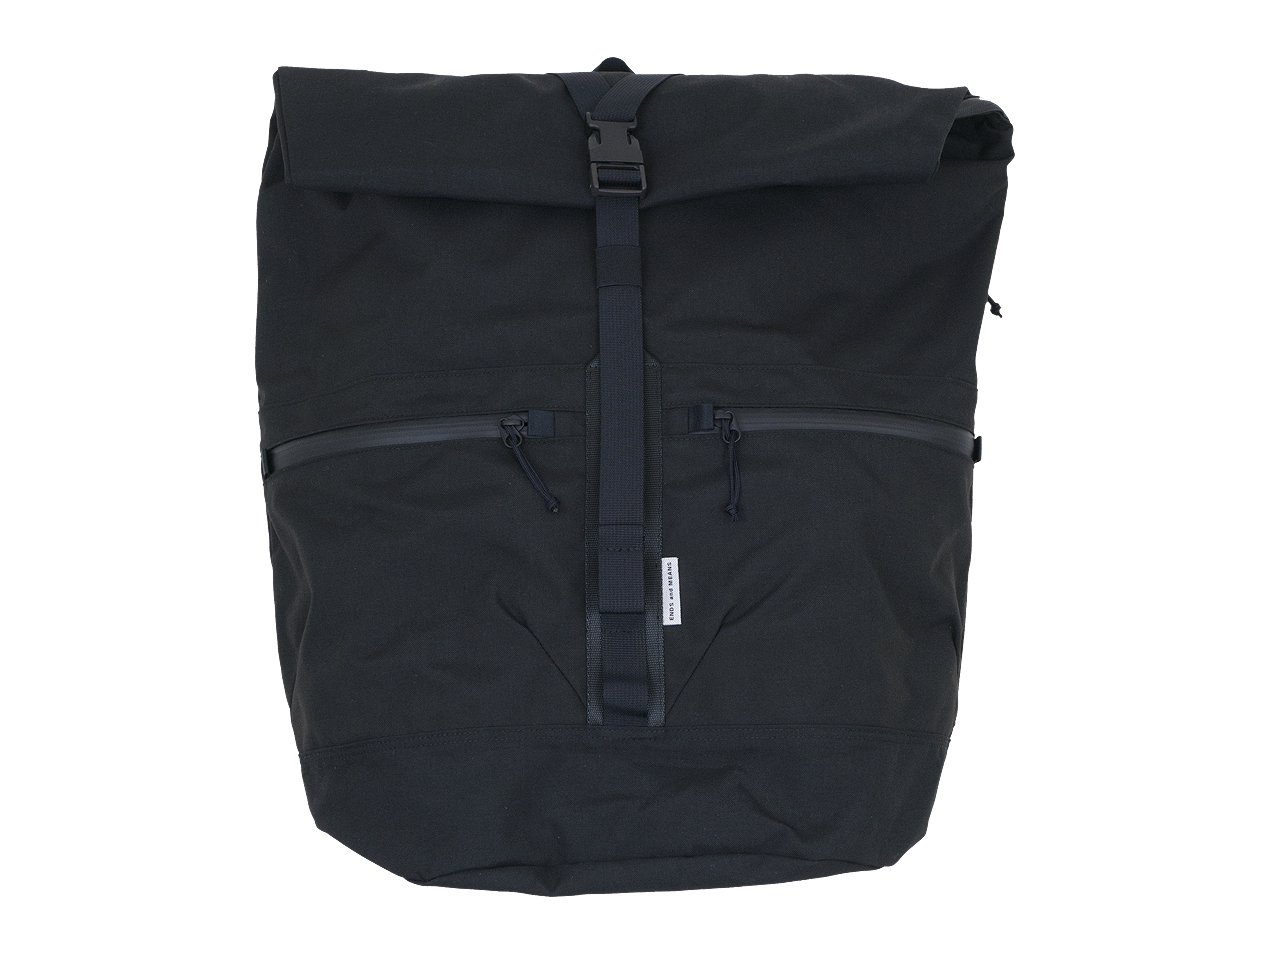 ENDS and MEANS Refugee Duffle Back Pack BLACK